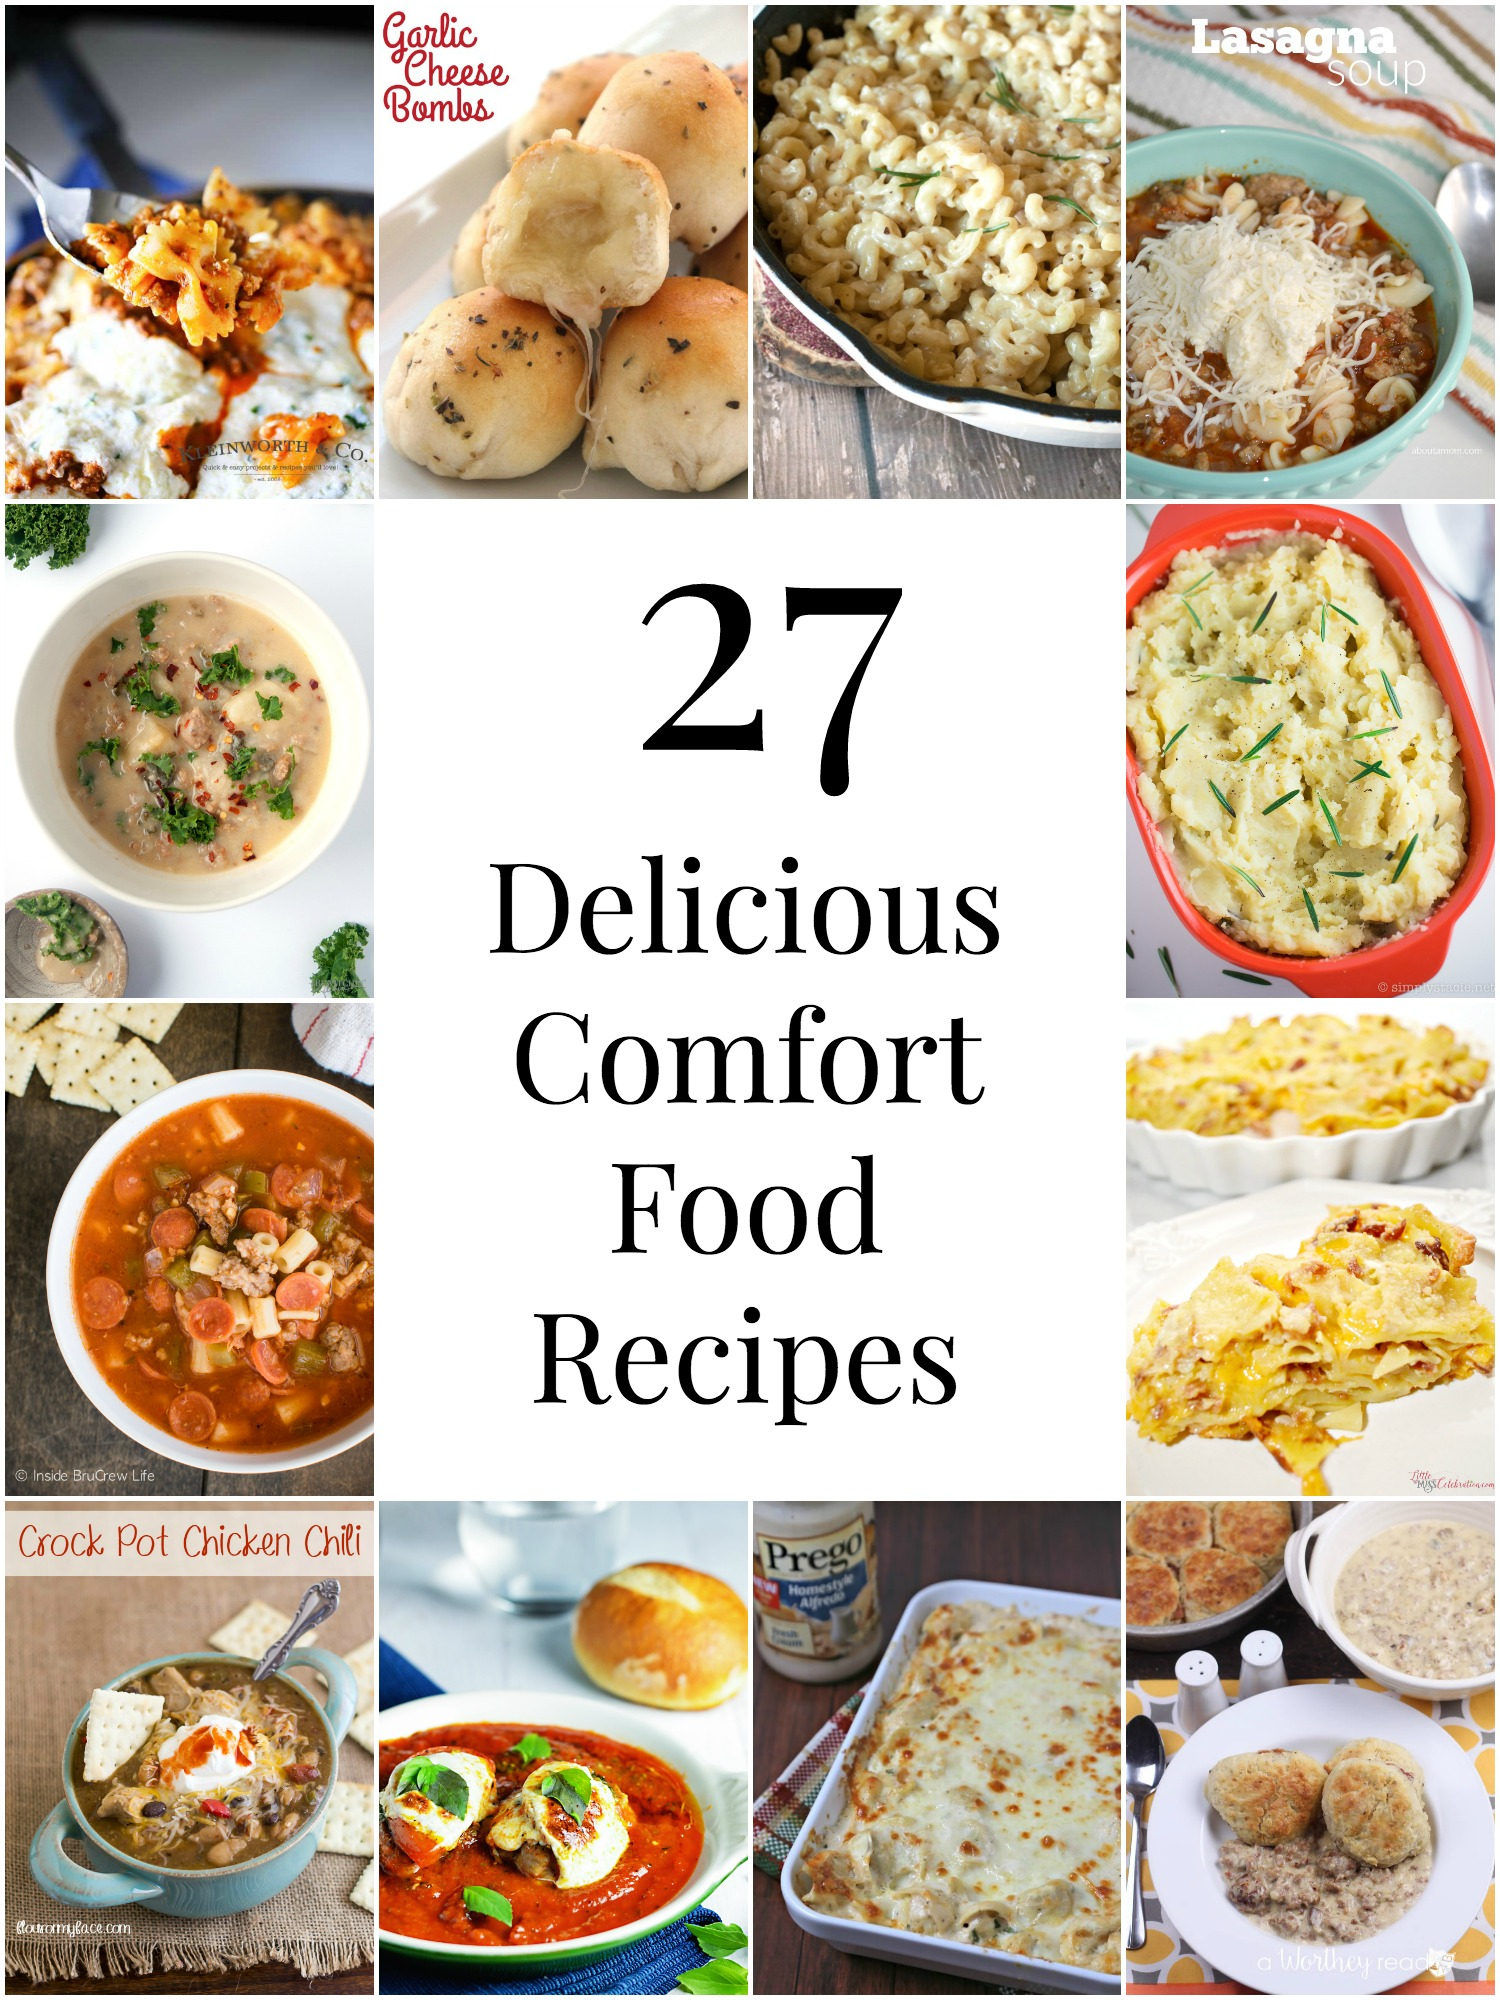 Functional Food Recipes